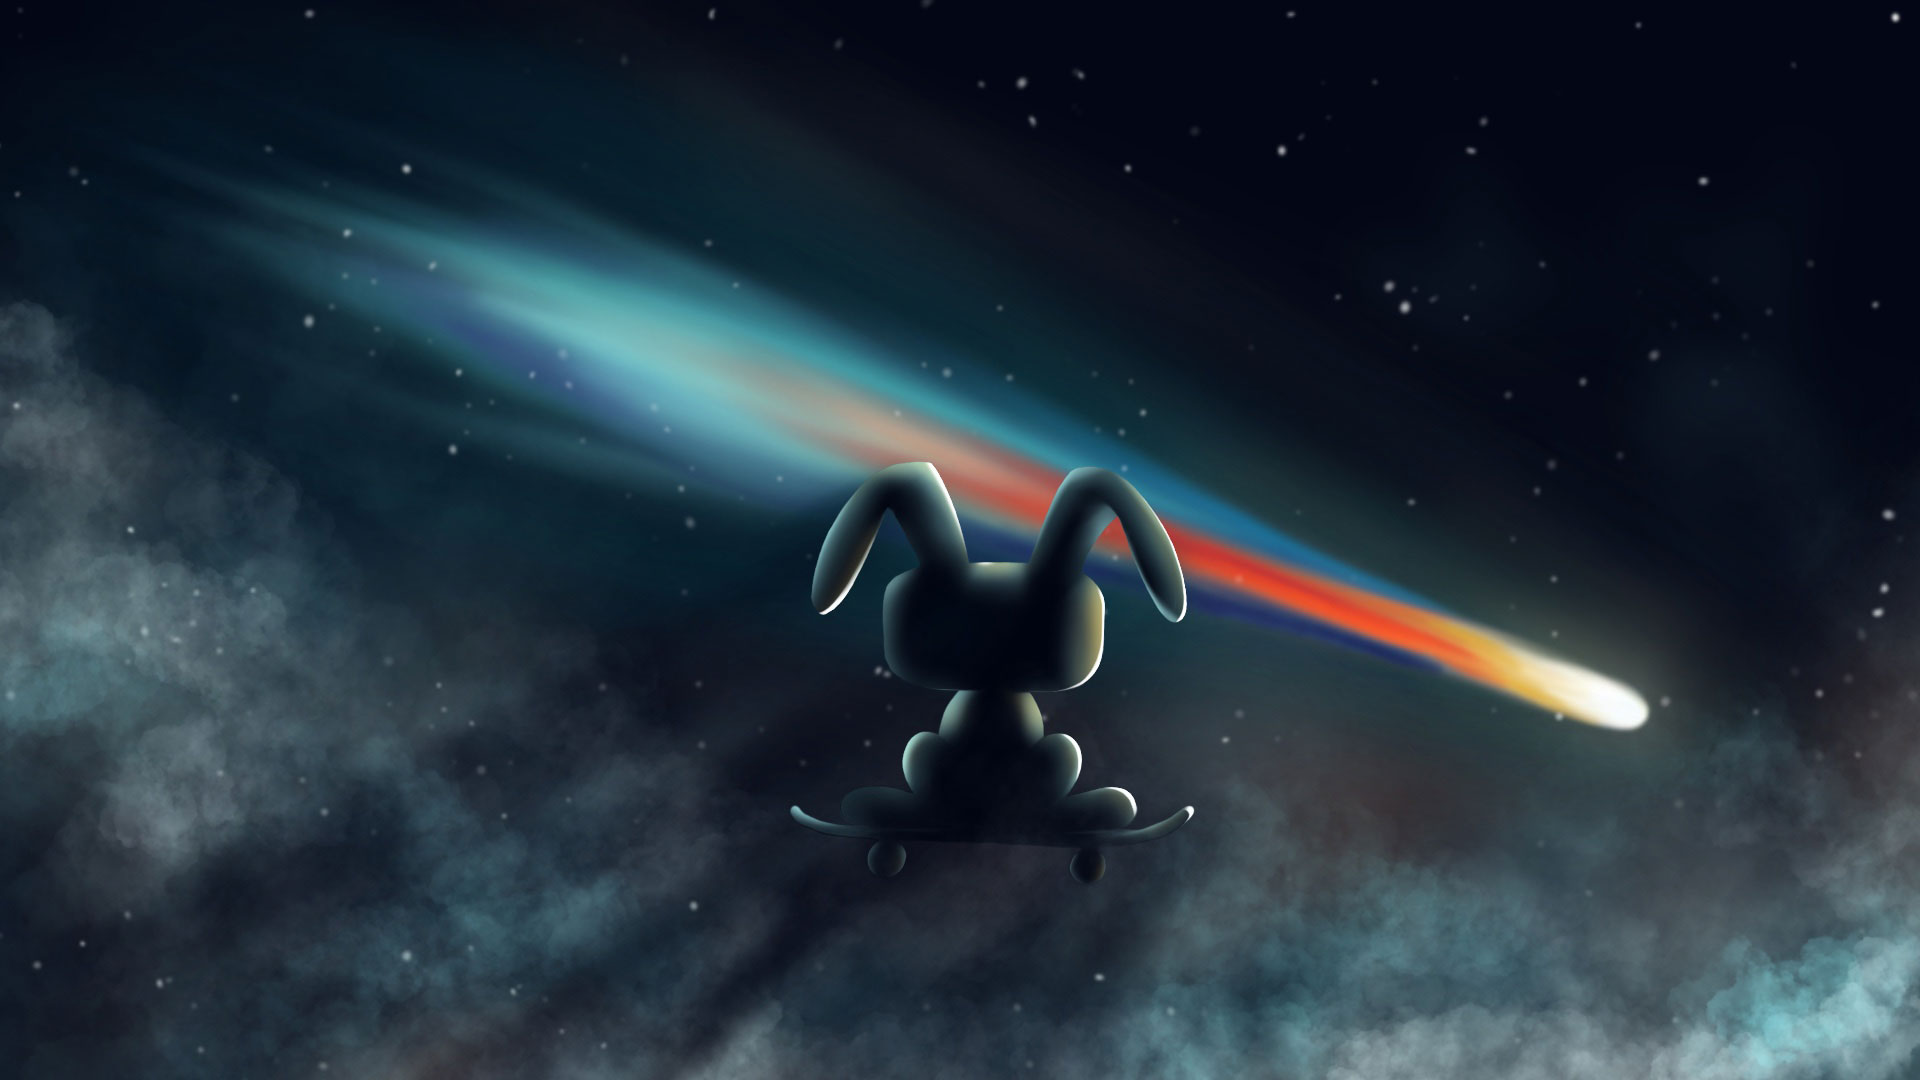 Meji the rabit observing the comet arriving from his skate